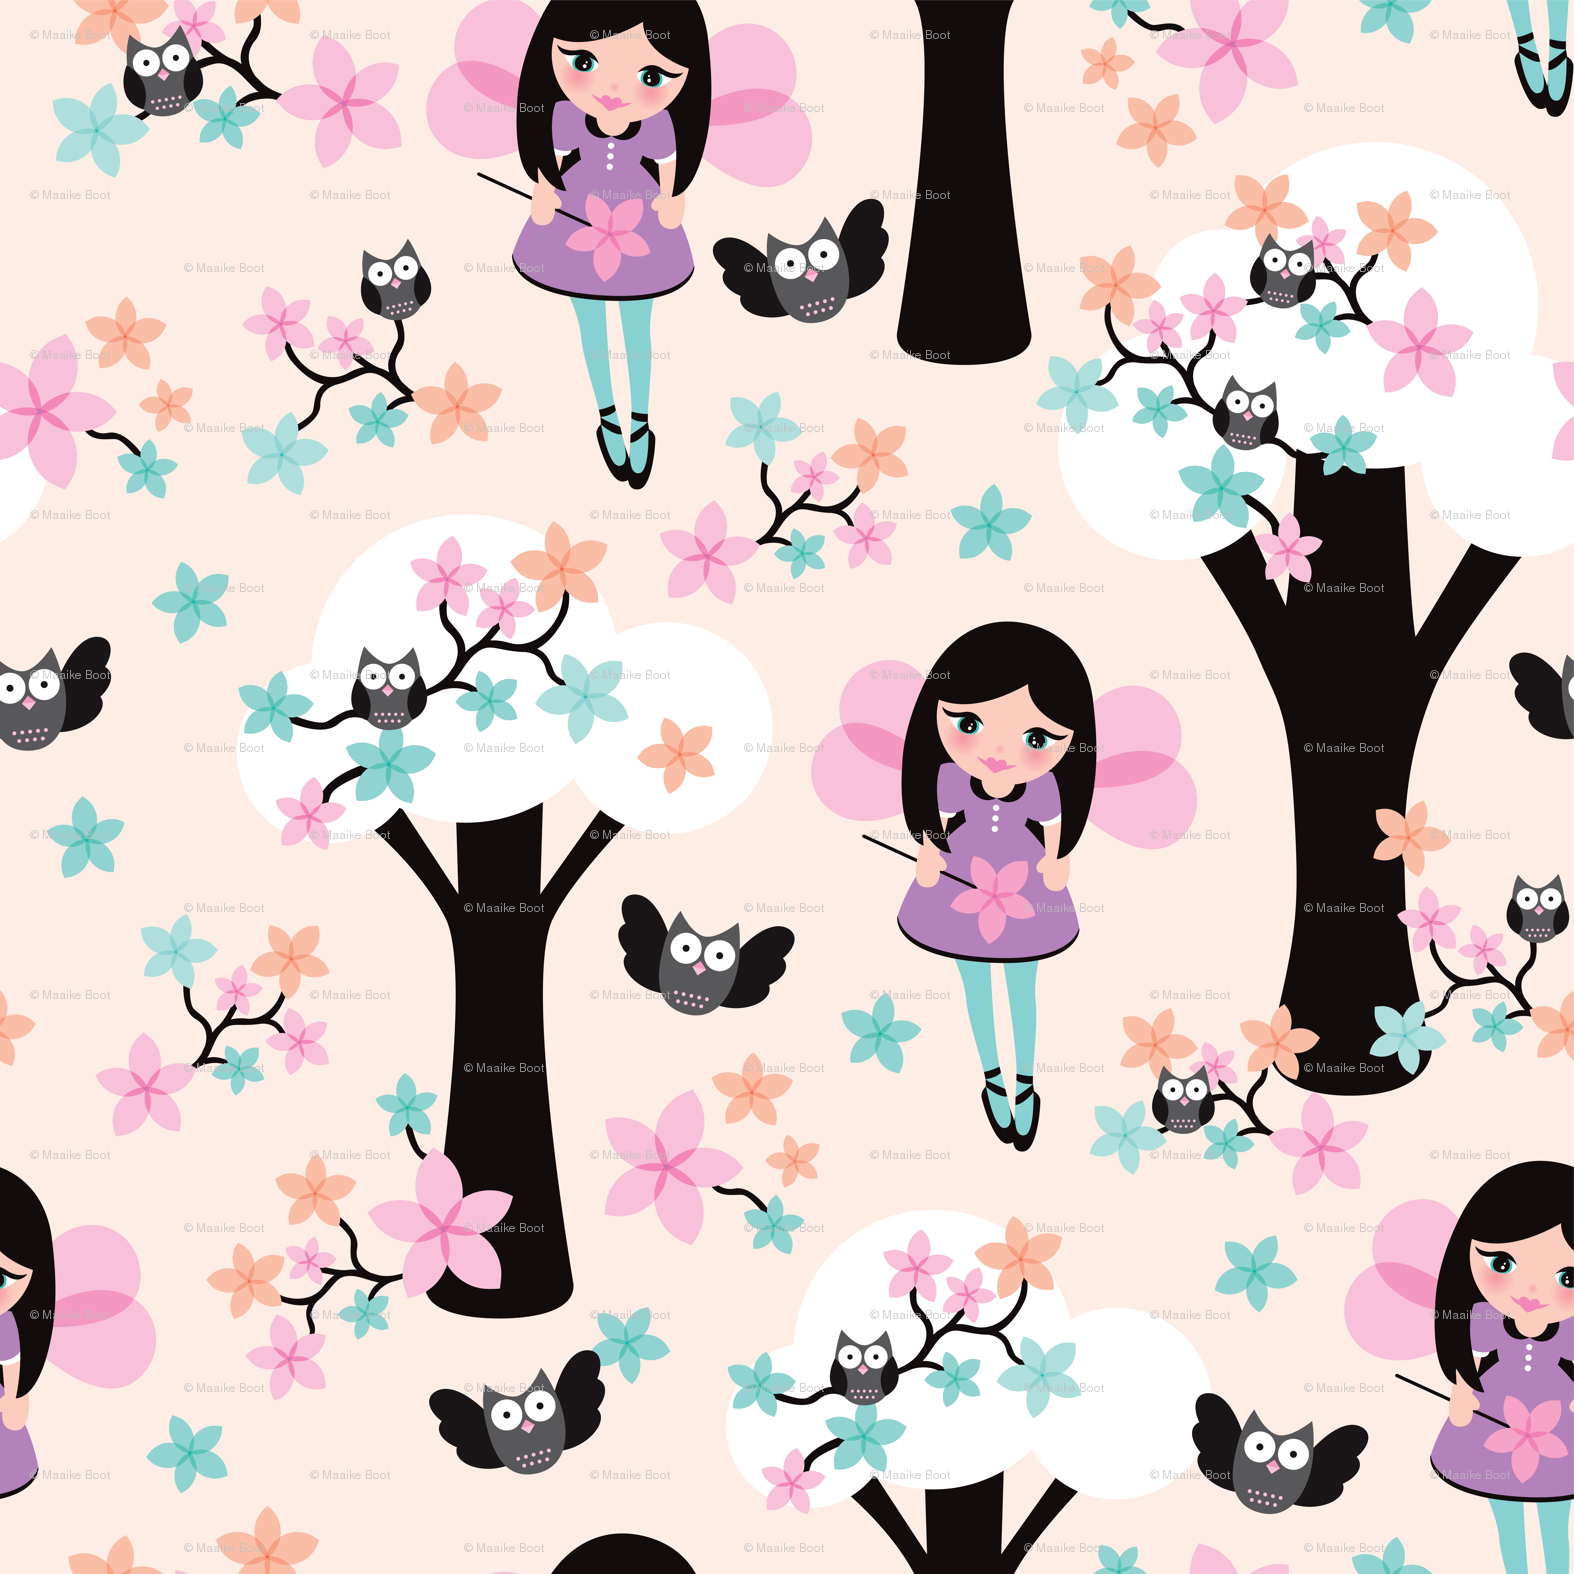 Cute fairy princess girls illustration pink owl tree pattern wallpaper - littlesmilemakers - Spoonflower